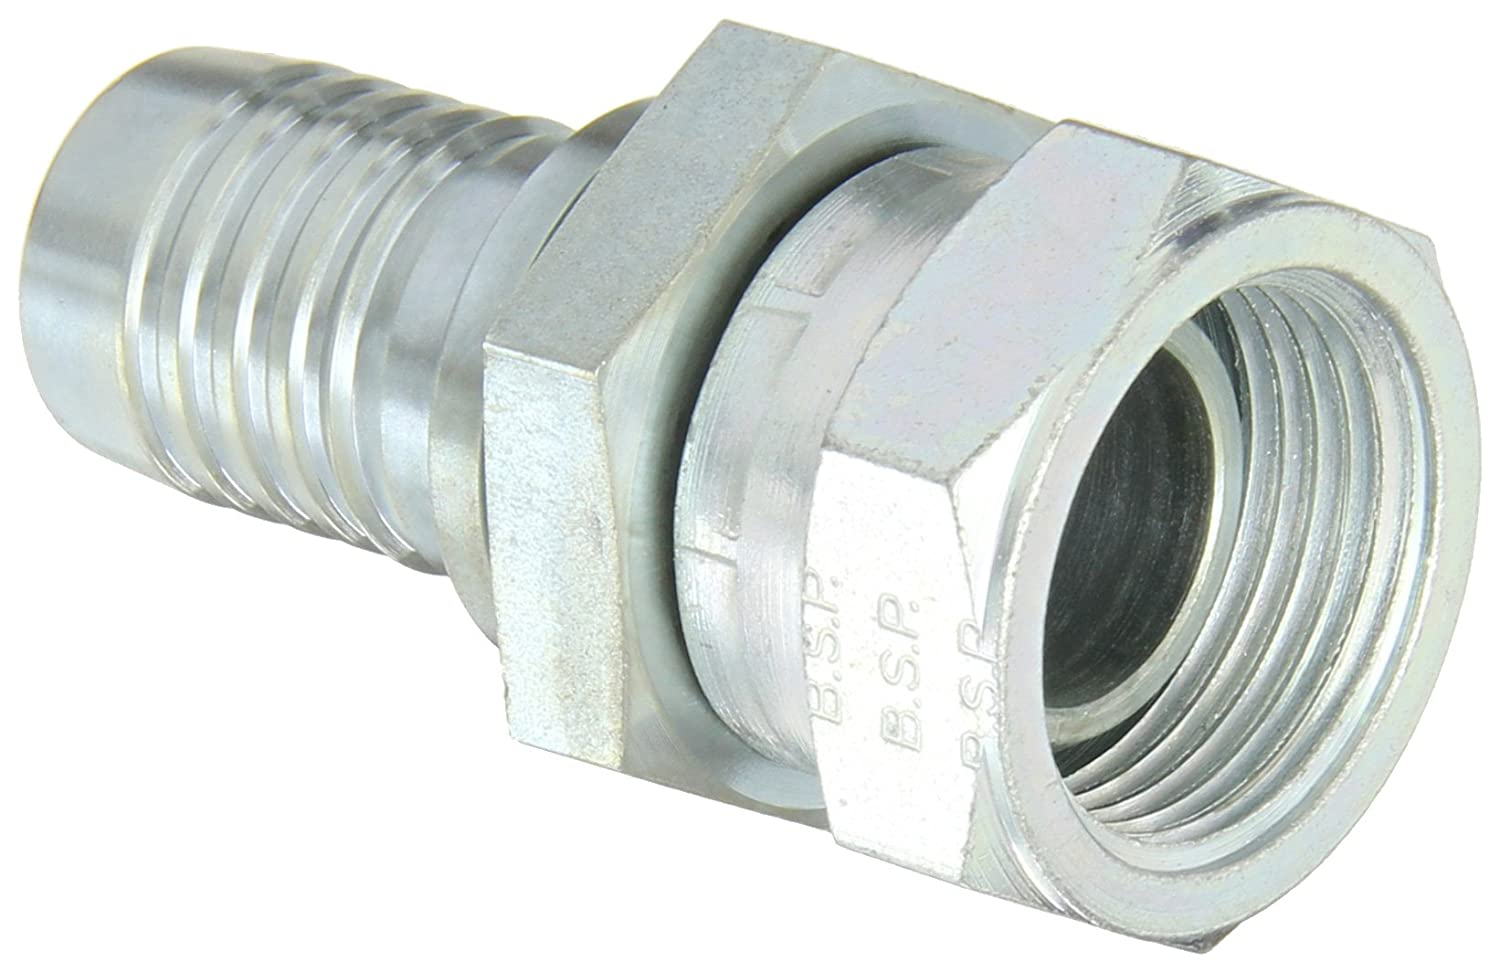 Aeroquip 1S16JM16 Carbon Steel Global Crimp Hose Fitting BSPP Female Swivel 1 Pipe Size 1 Hose ID 1 Pipe Size Eaton 1 Hose ID Straight